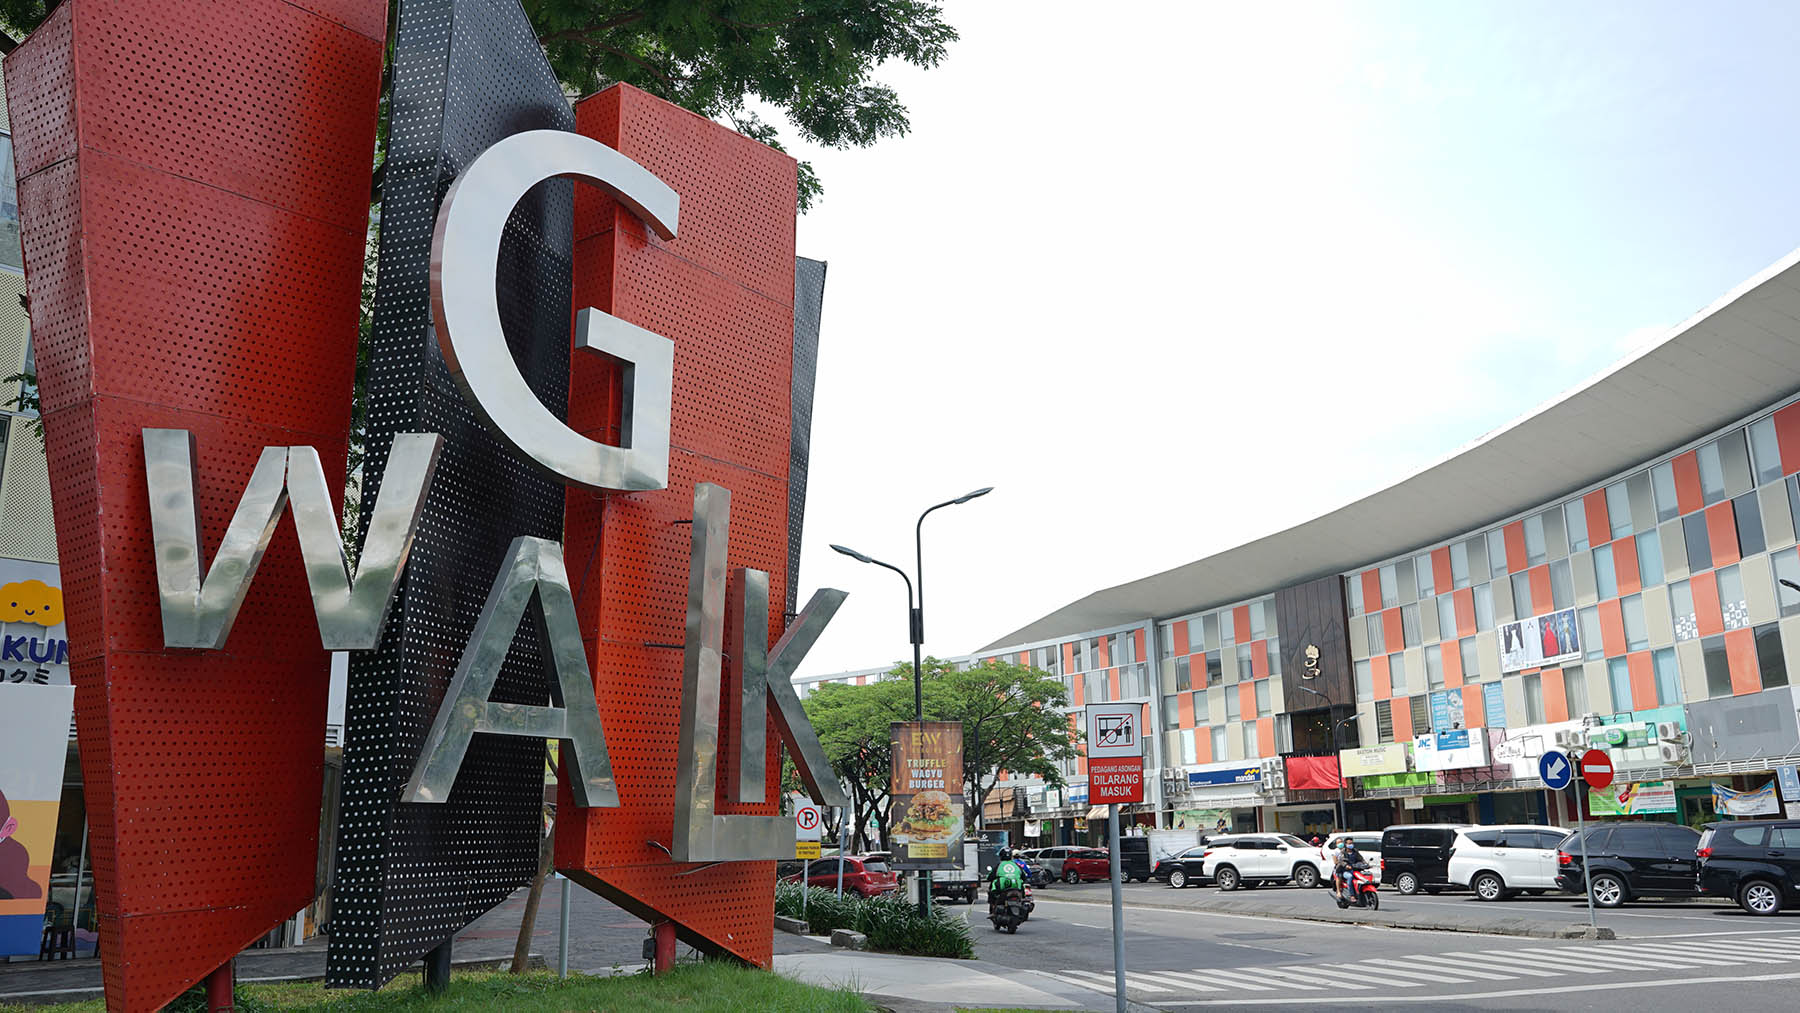 Iconic modern culinary space - Gwalk, you can find a variety of foods from different part of Indonesia at reasonable prices here